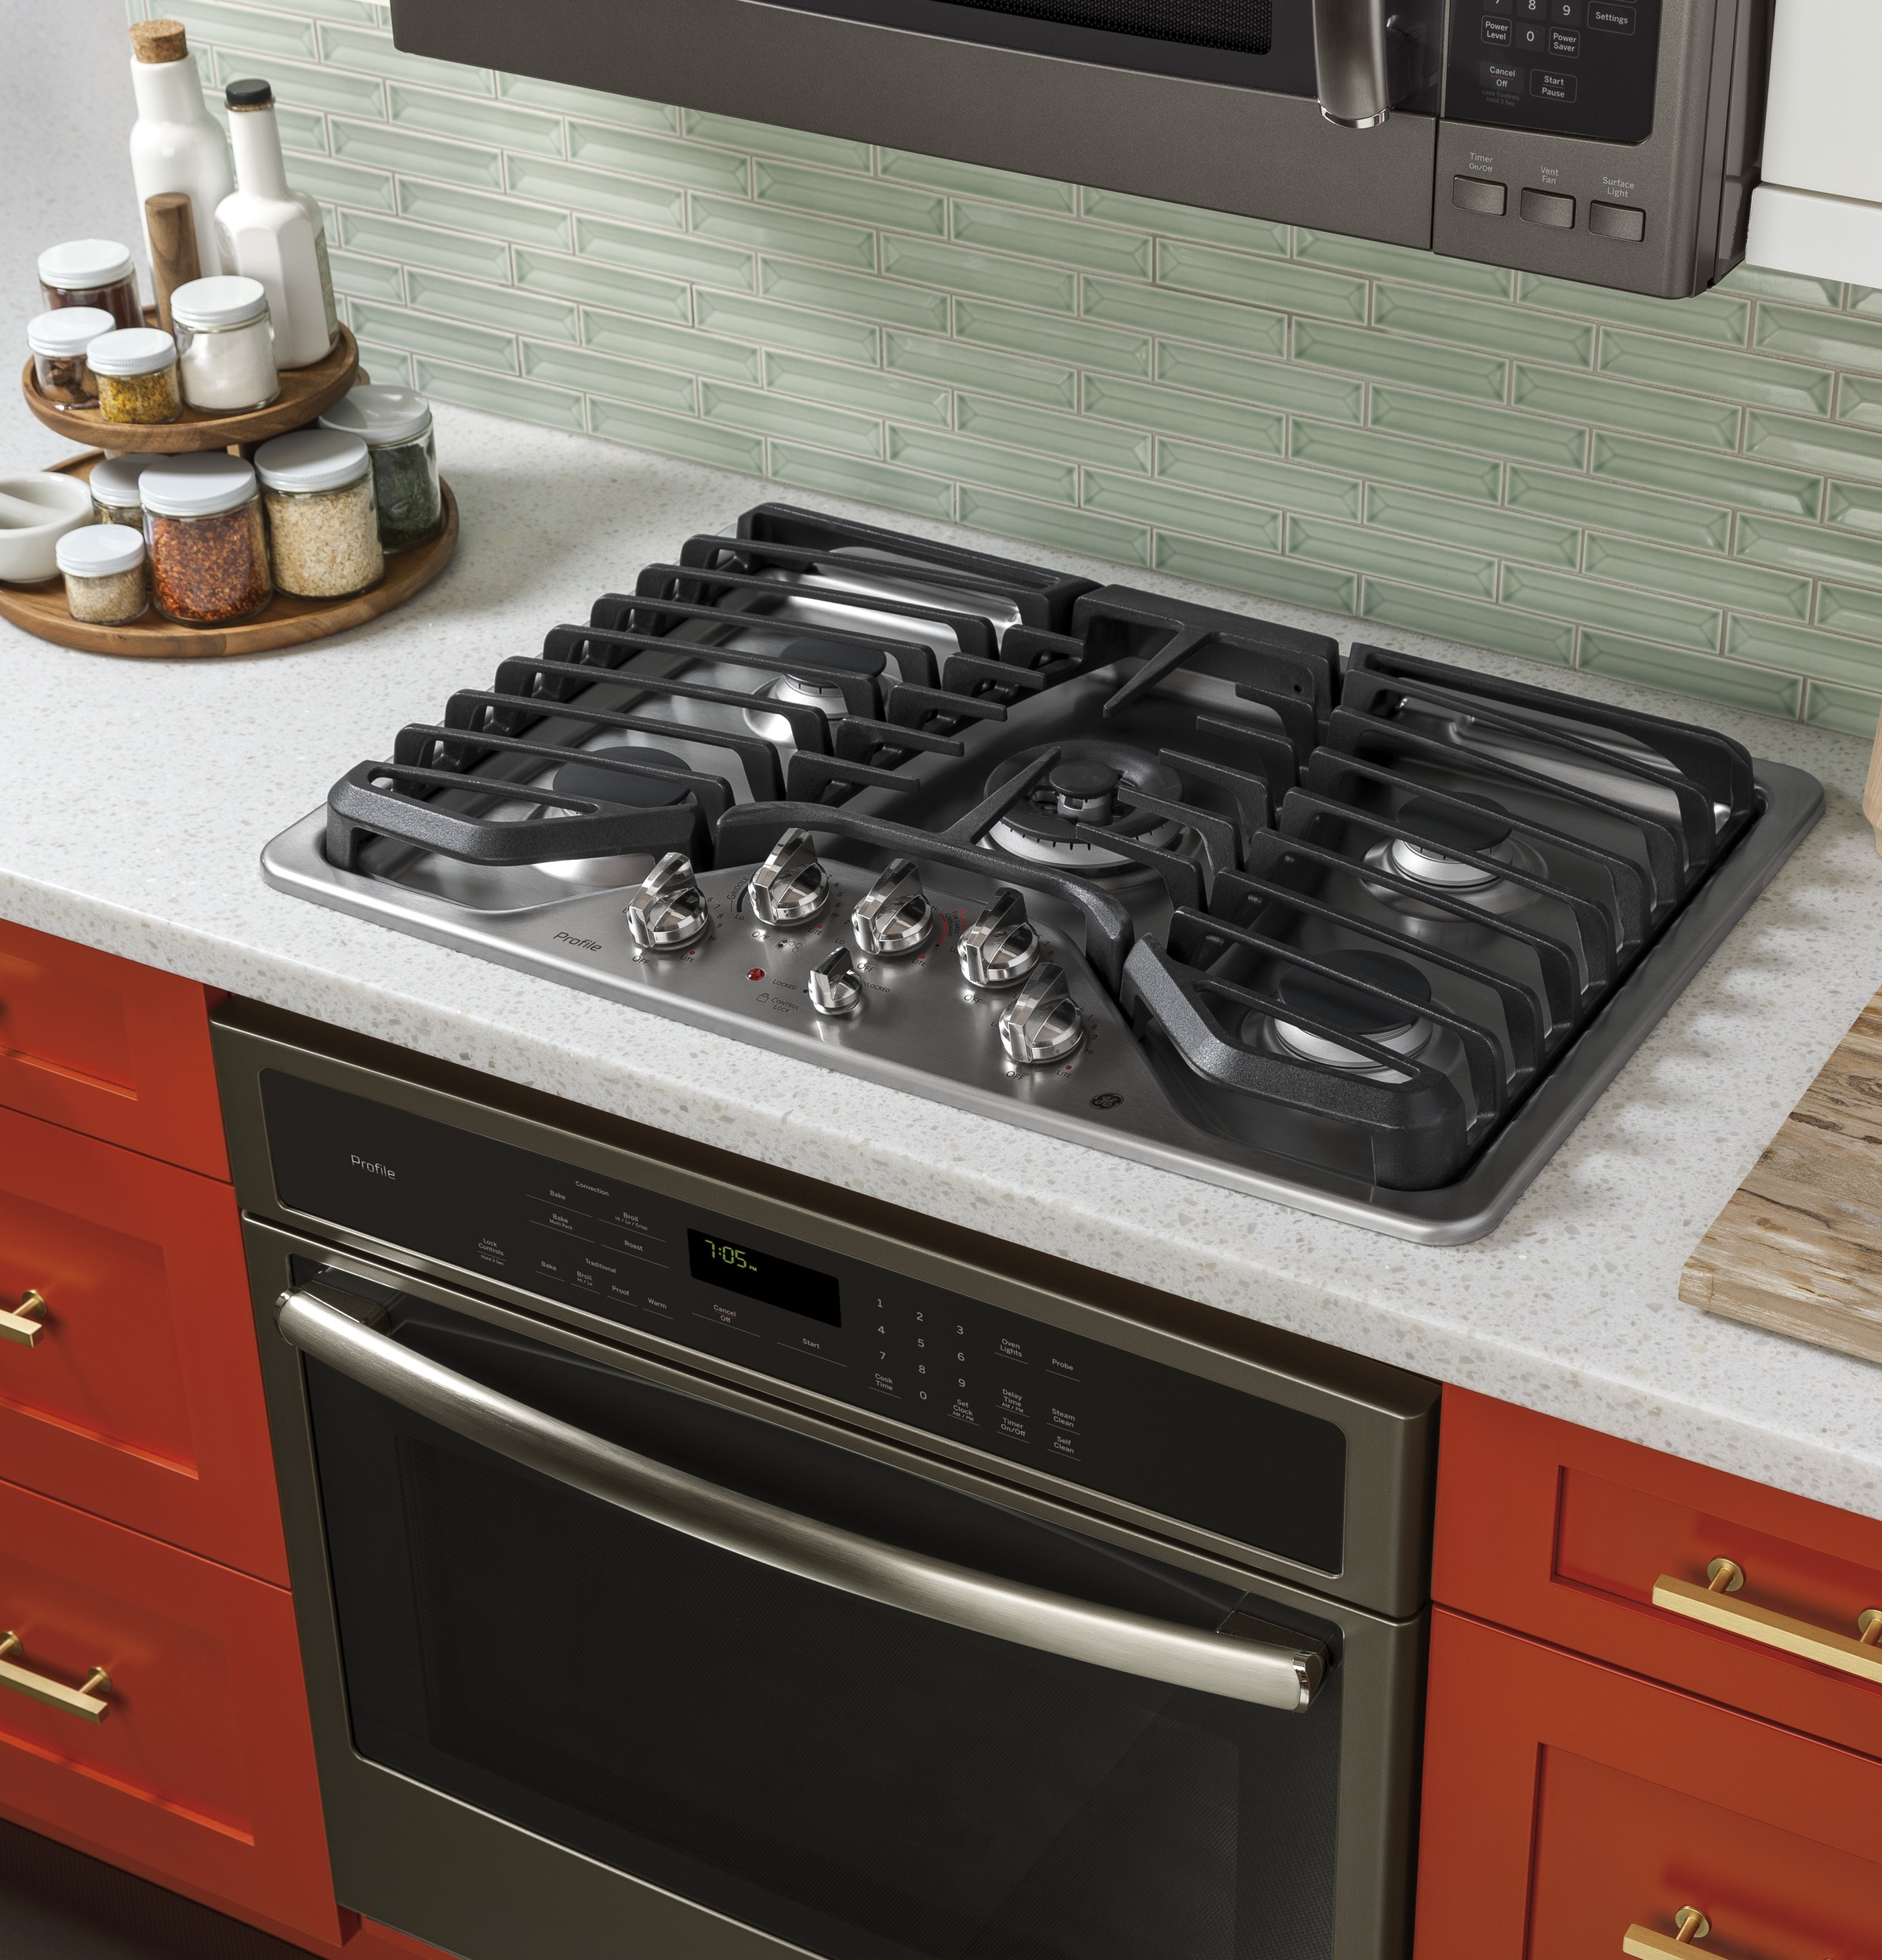 home appliances cooktop cr is which and reports kitchen oven wall hero best stove vs countertop consumer range